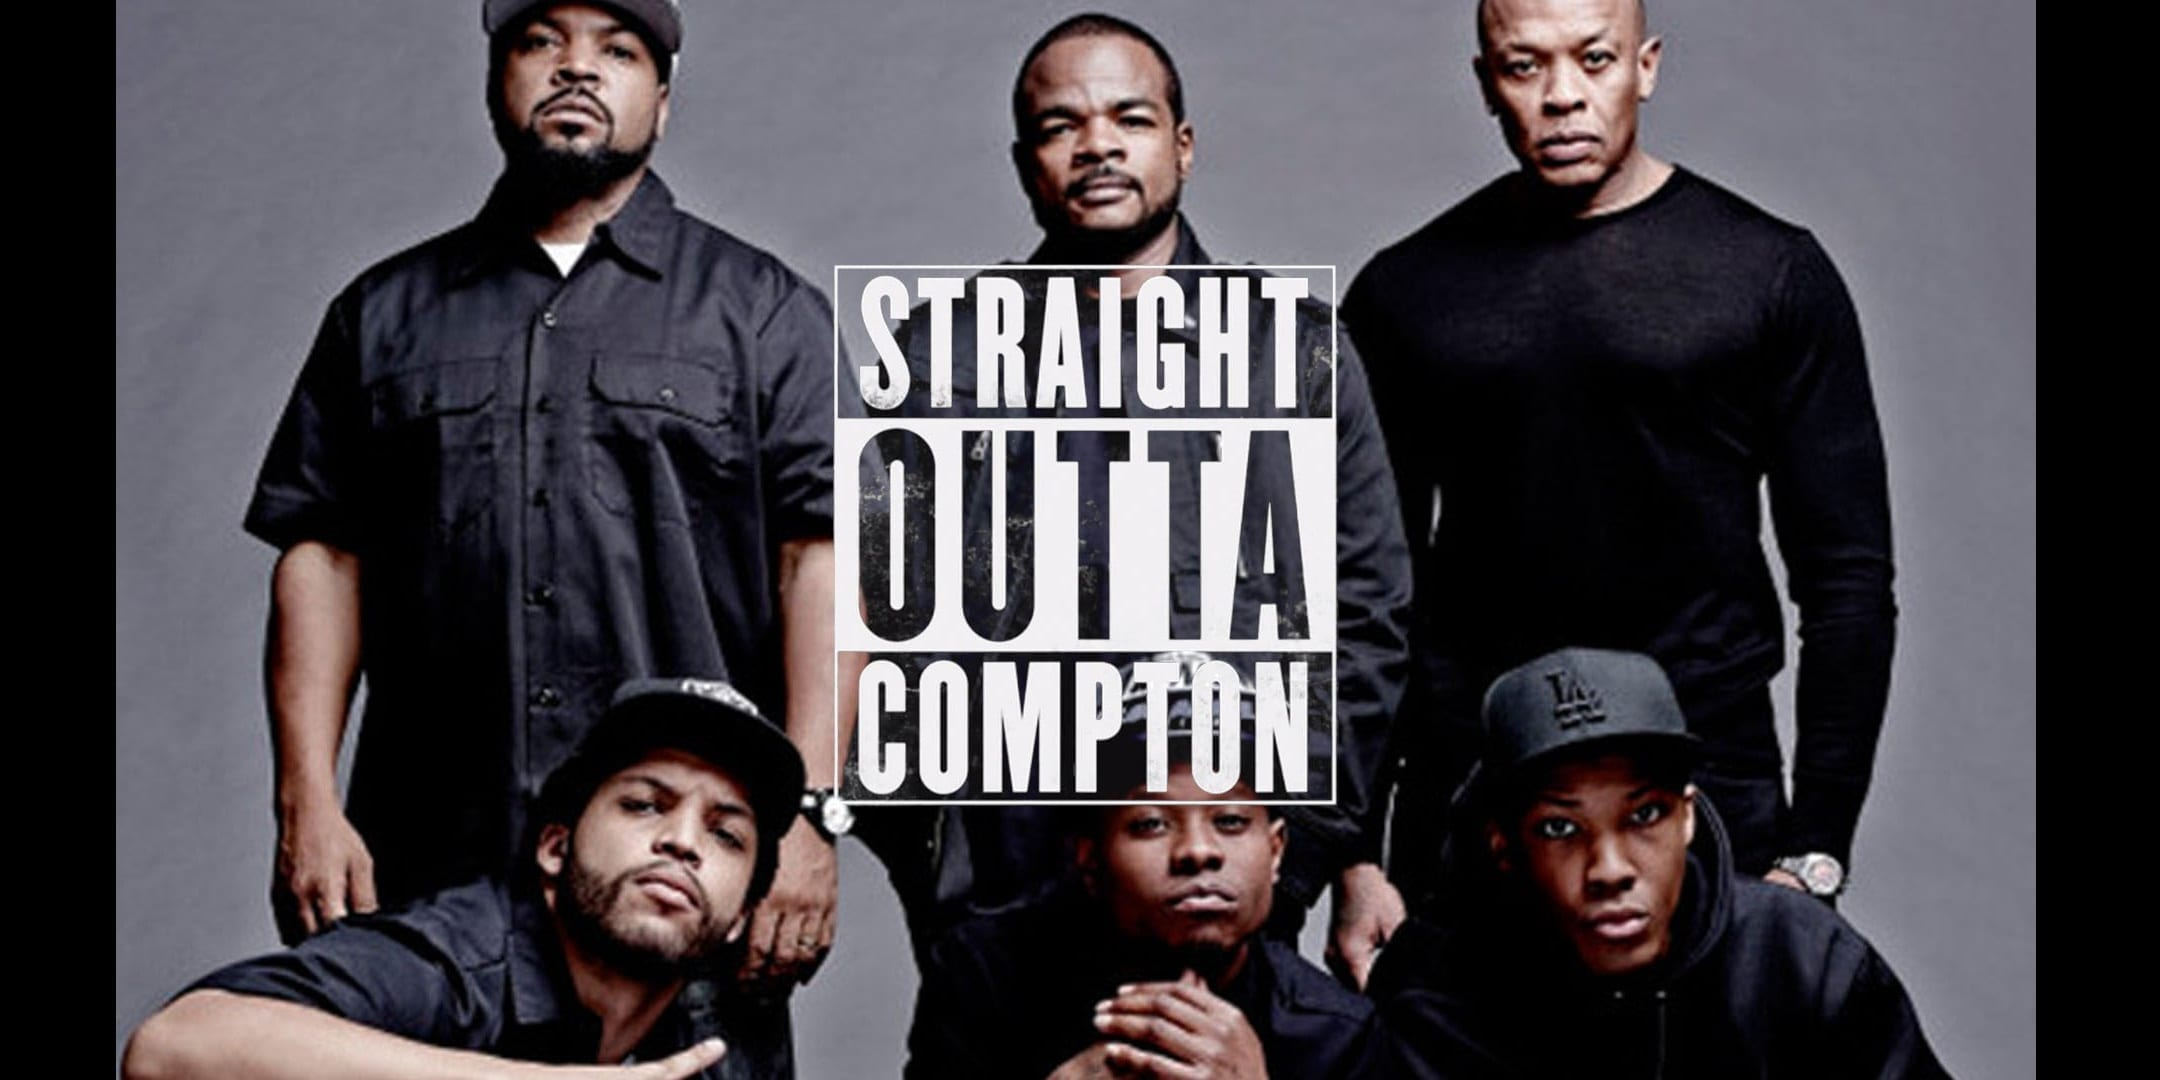 straight-outta-compton-movie-2015